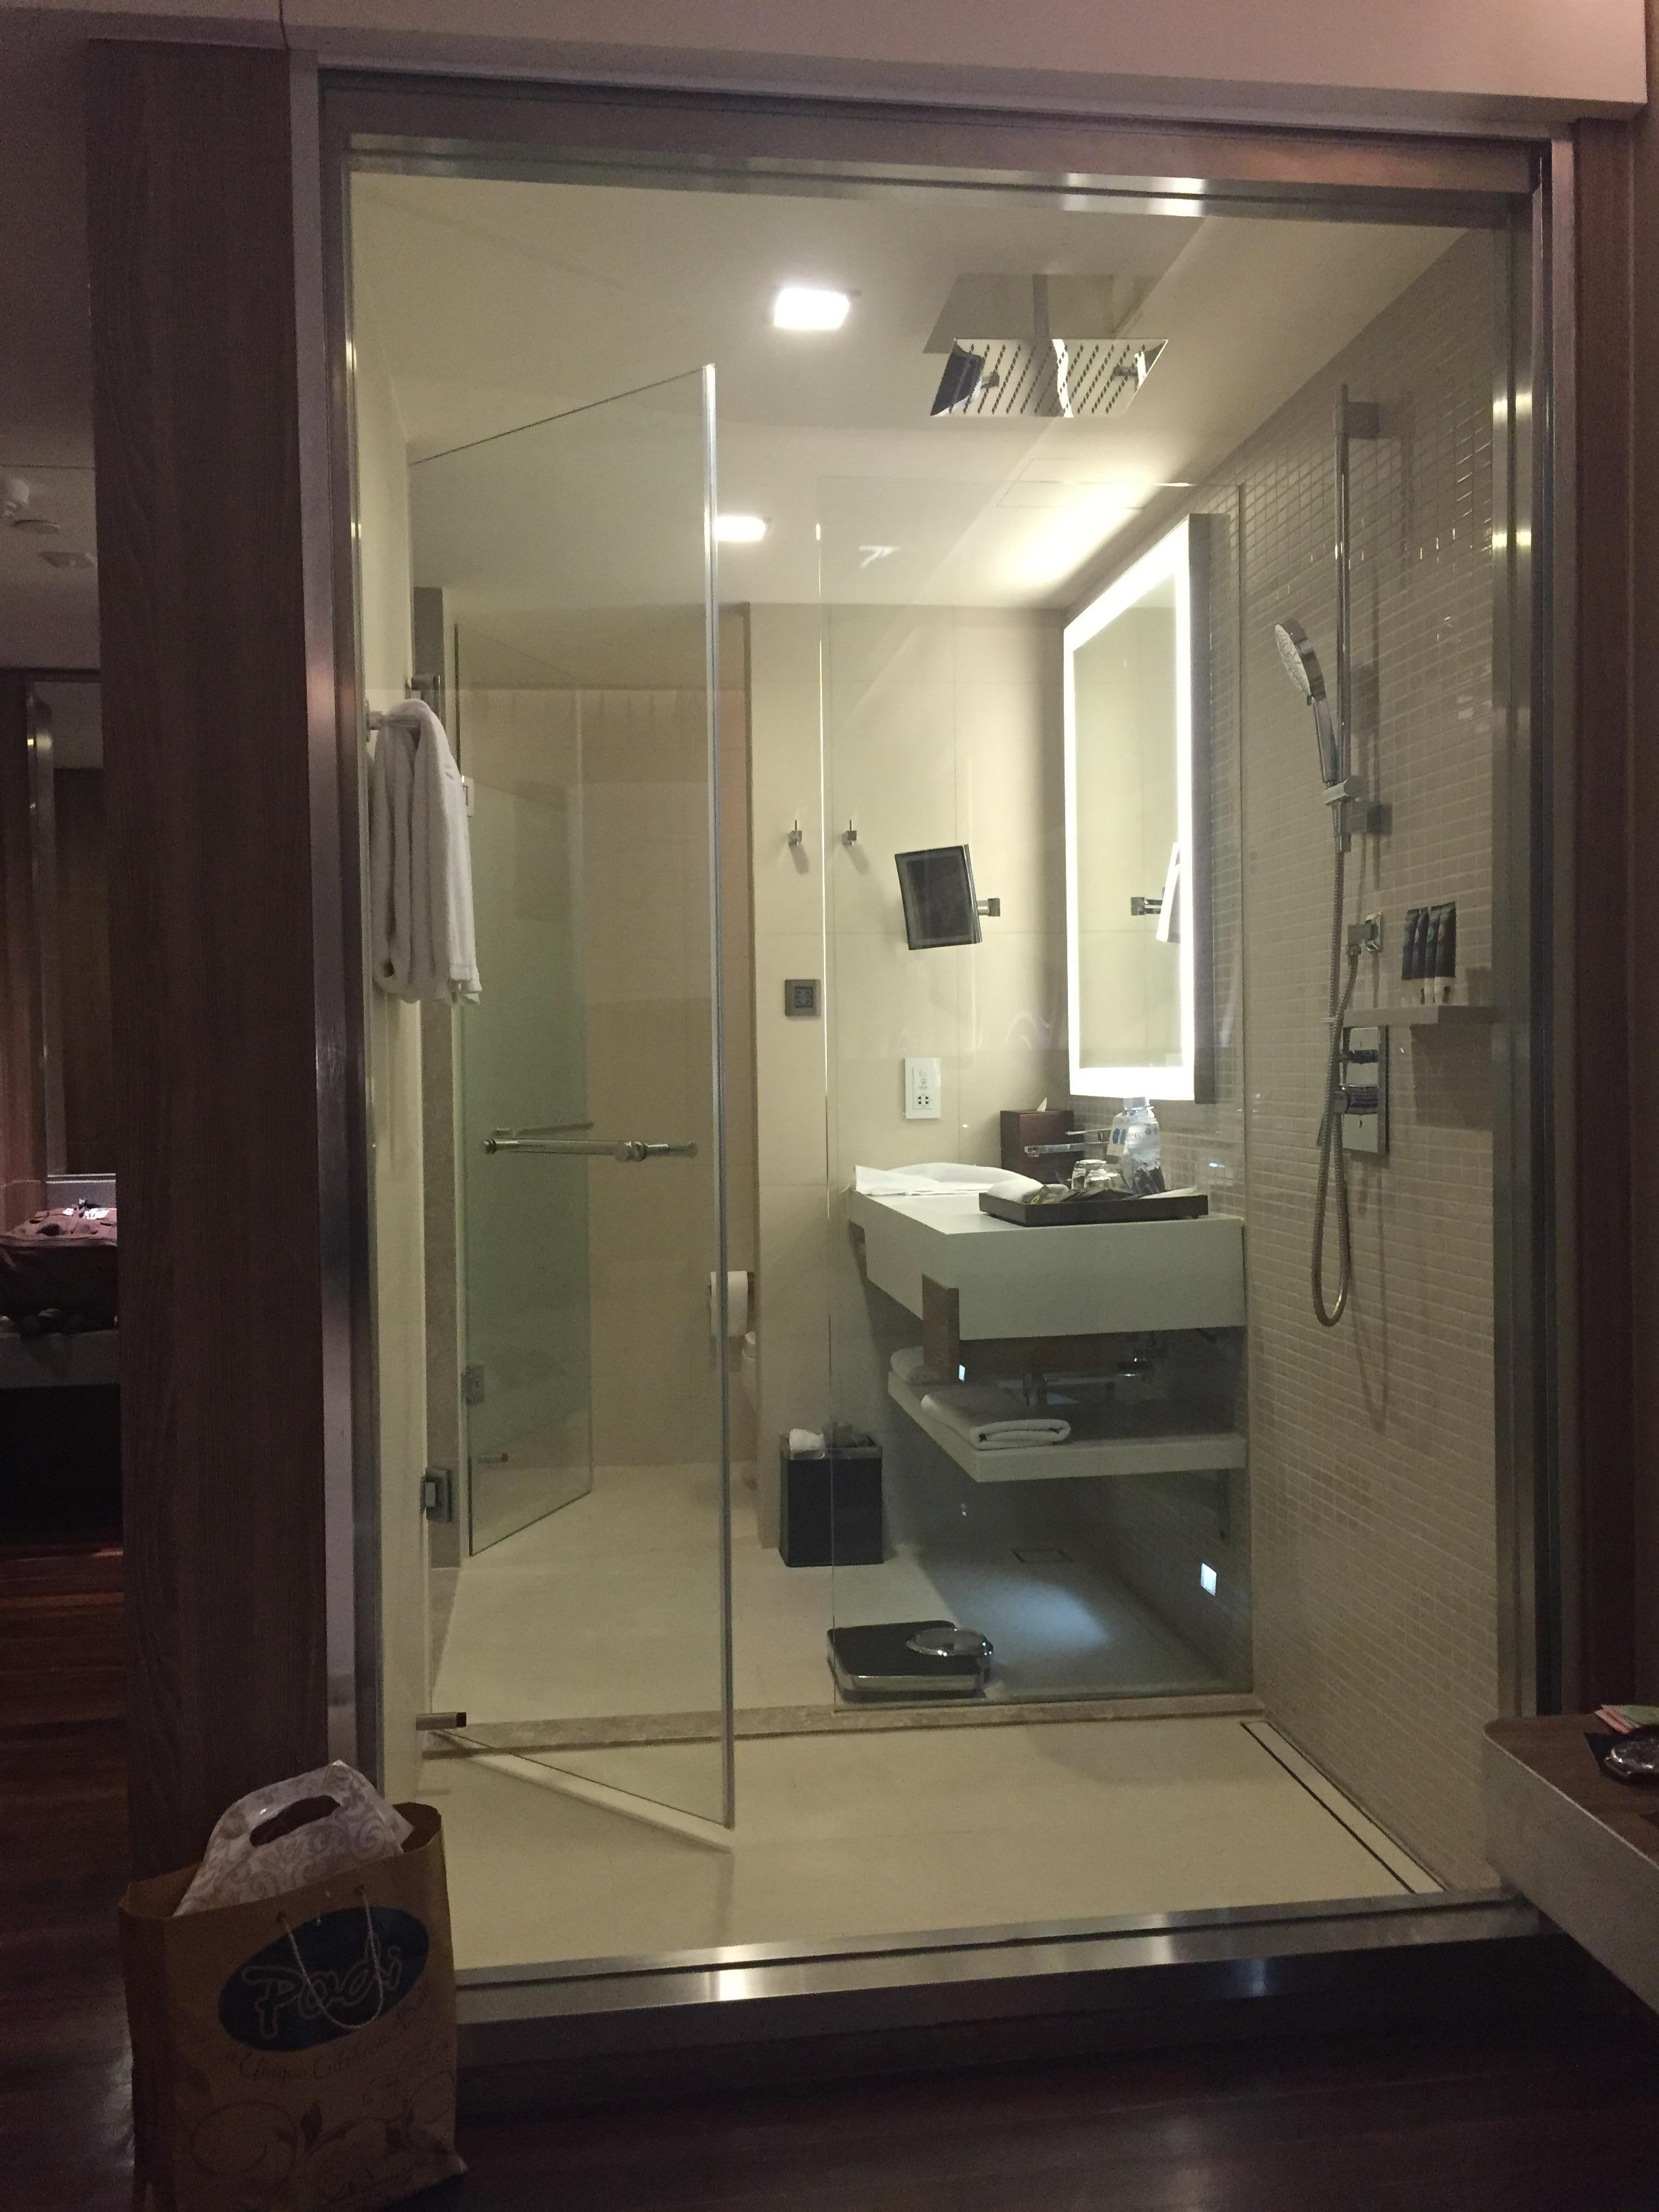 the shower with retracting shade